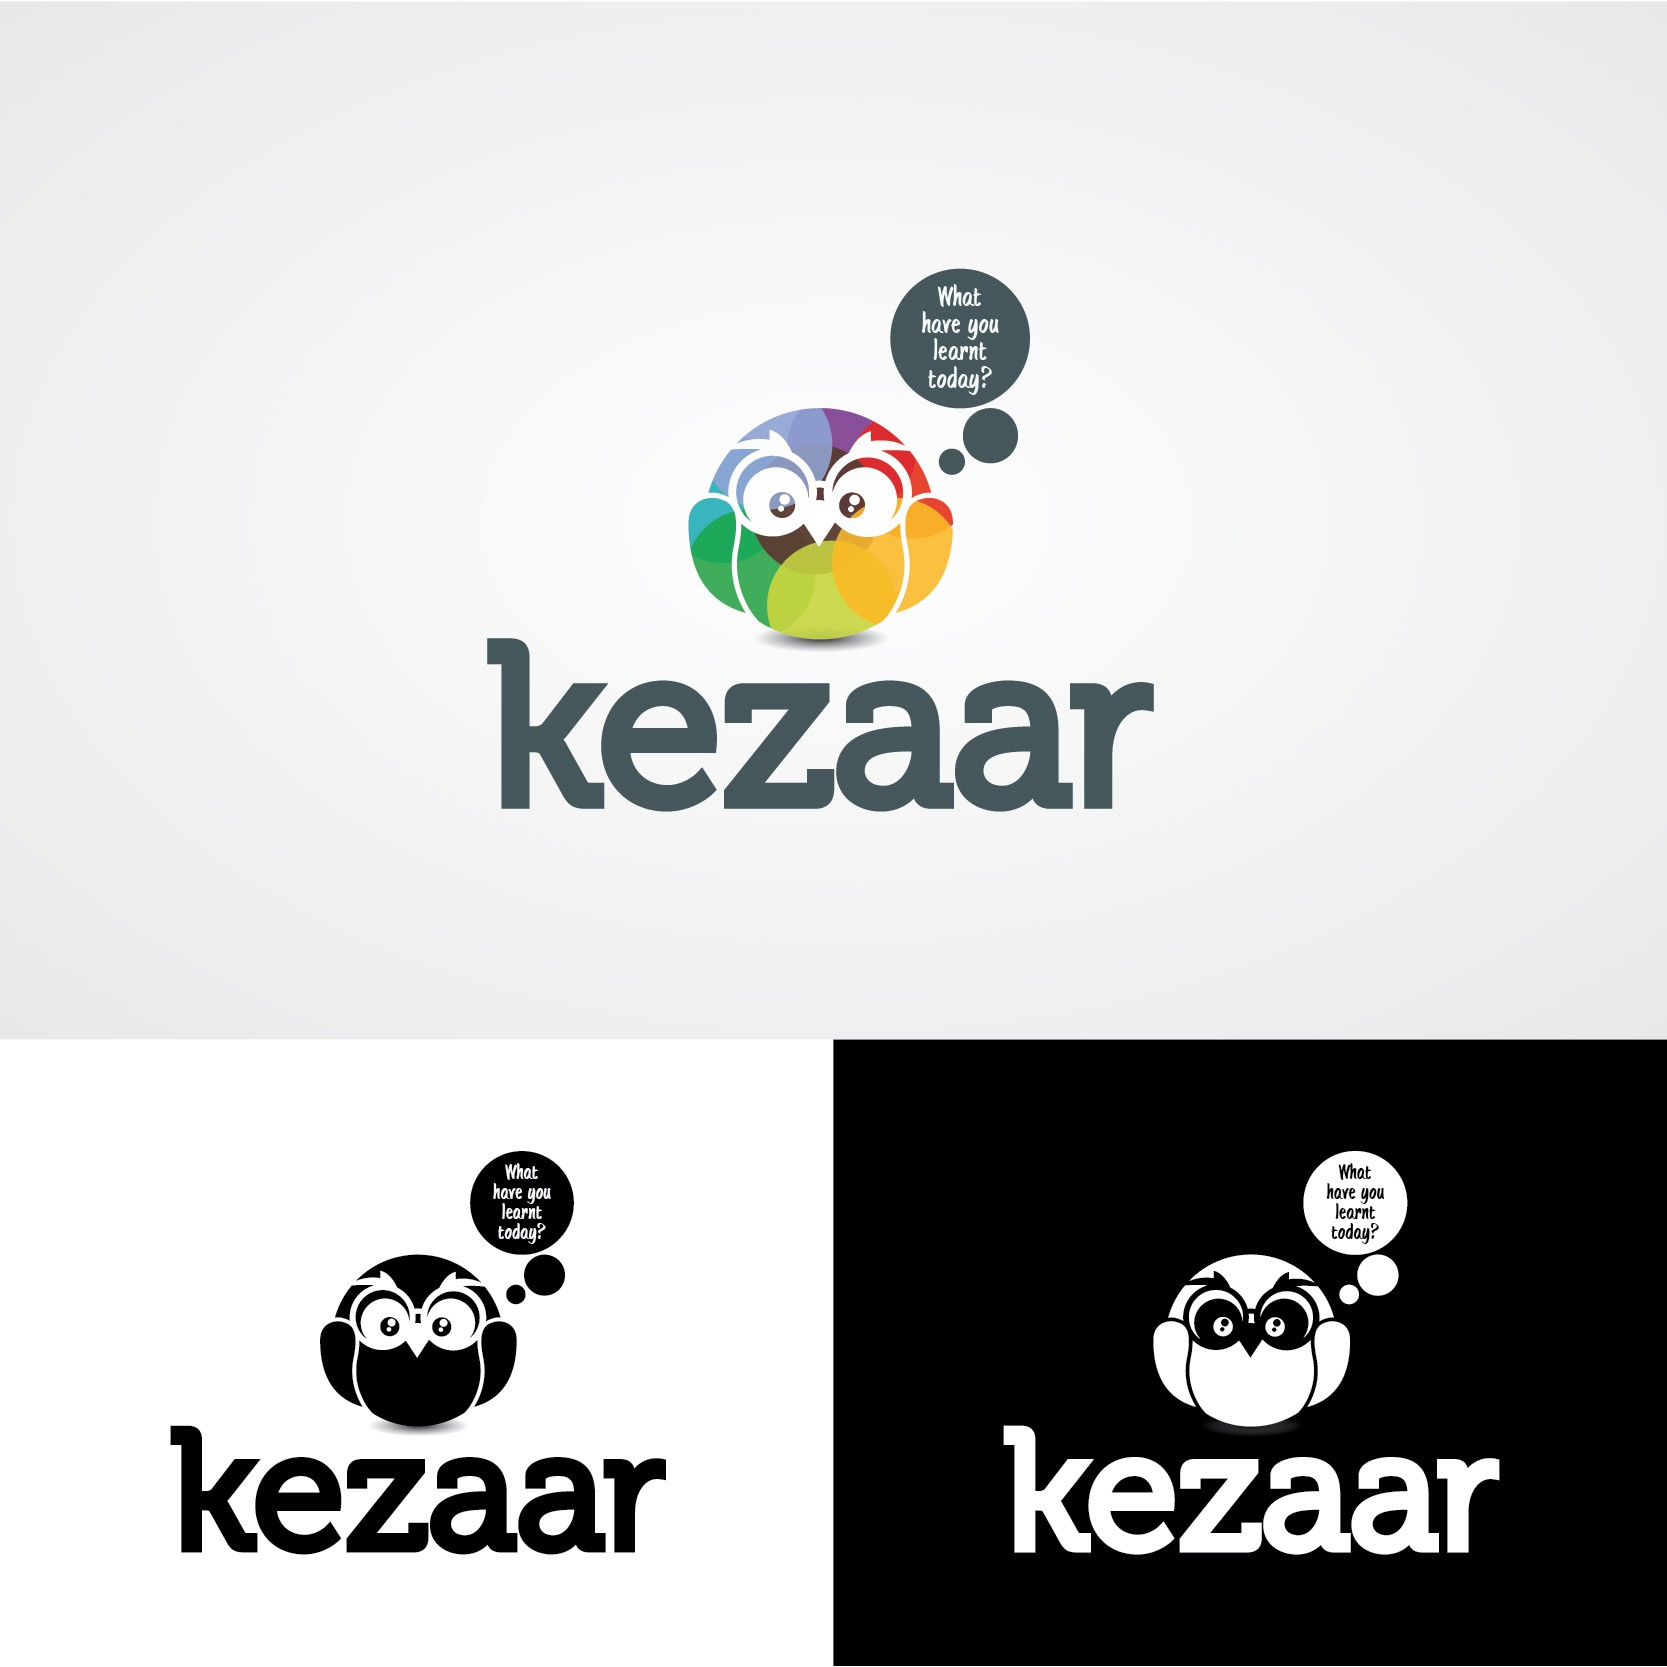 Make this the logo rock-star for Kezzar! the brand new, Super cool social marketplace for skills!